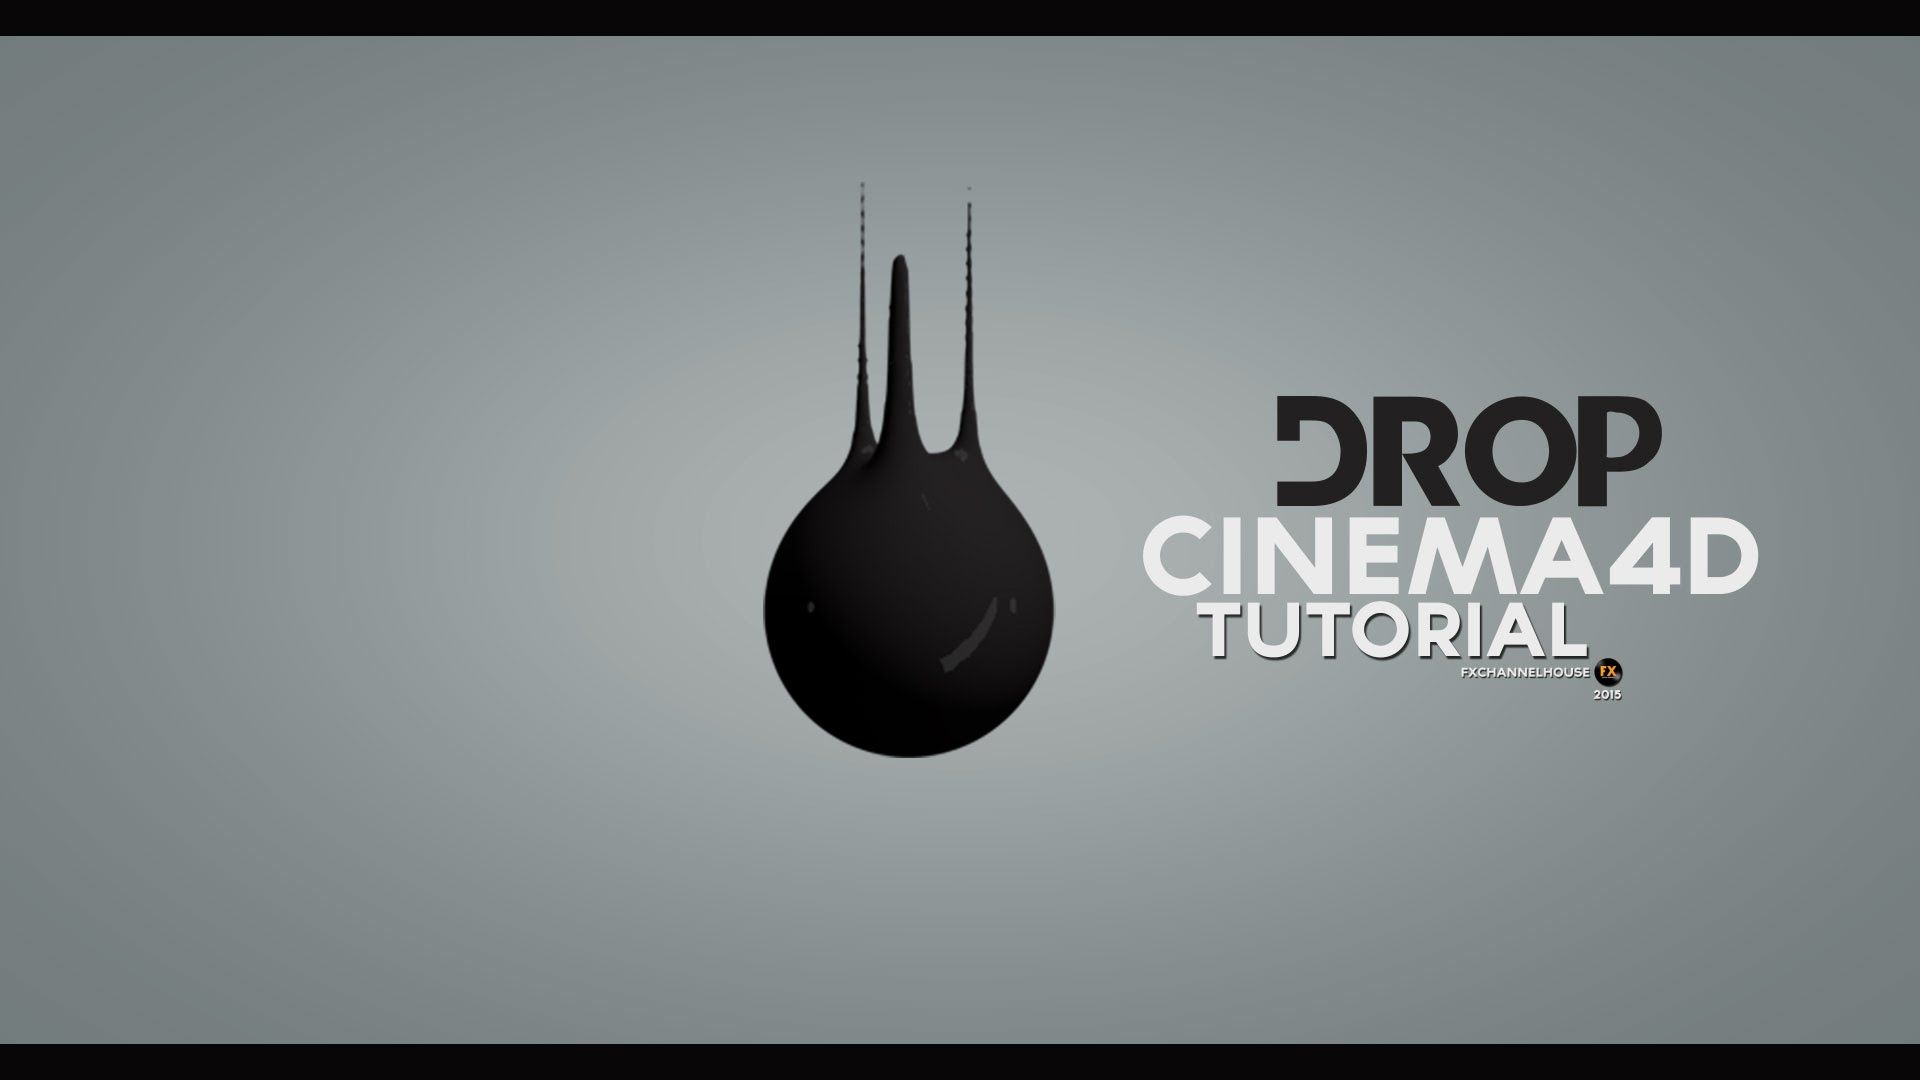 New cinema4d tutorial (Drop motion) On this tutorial i guide you on how to animate some cool spheres like a liquid drop motion. Download file : http://www.me...